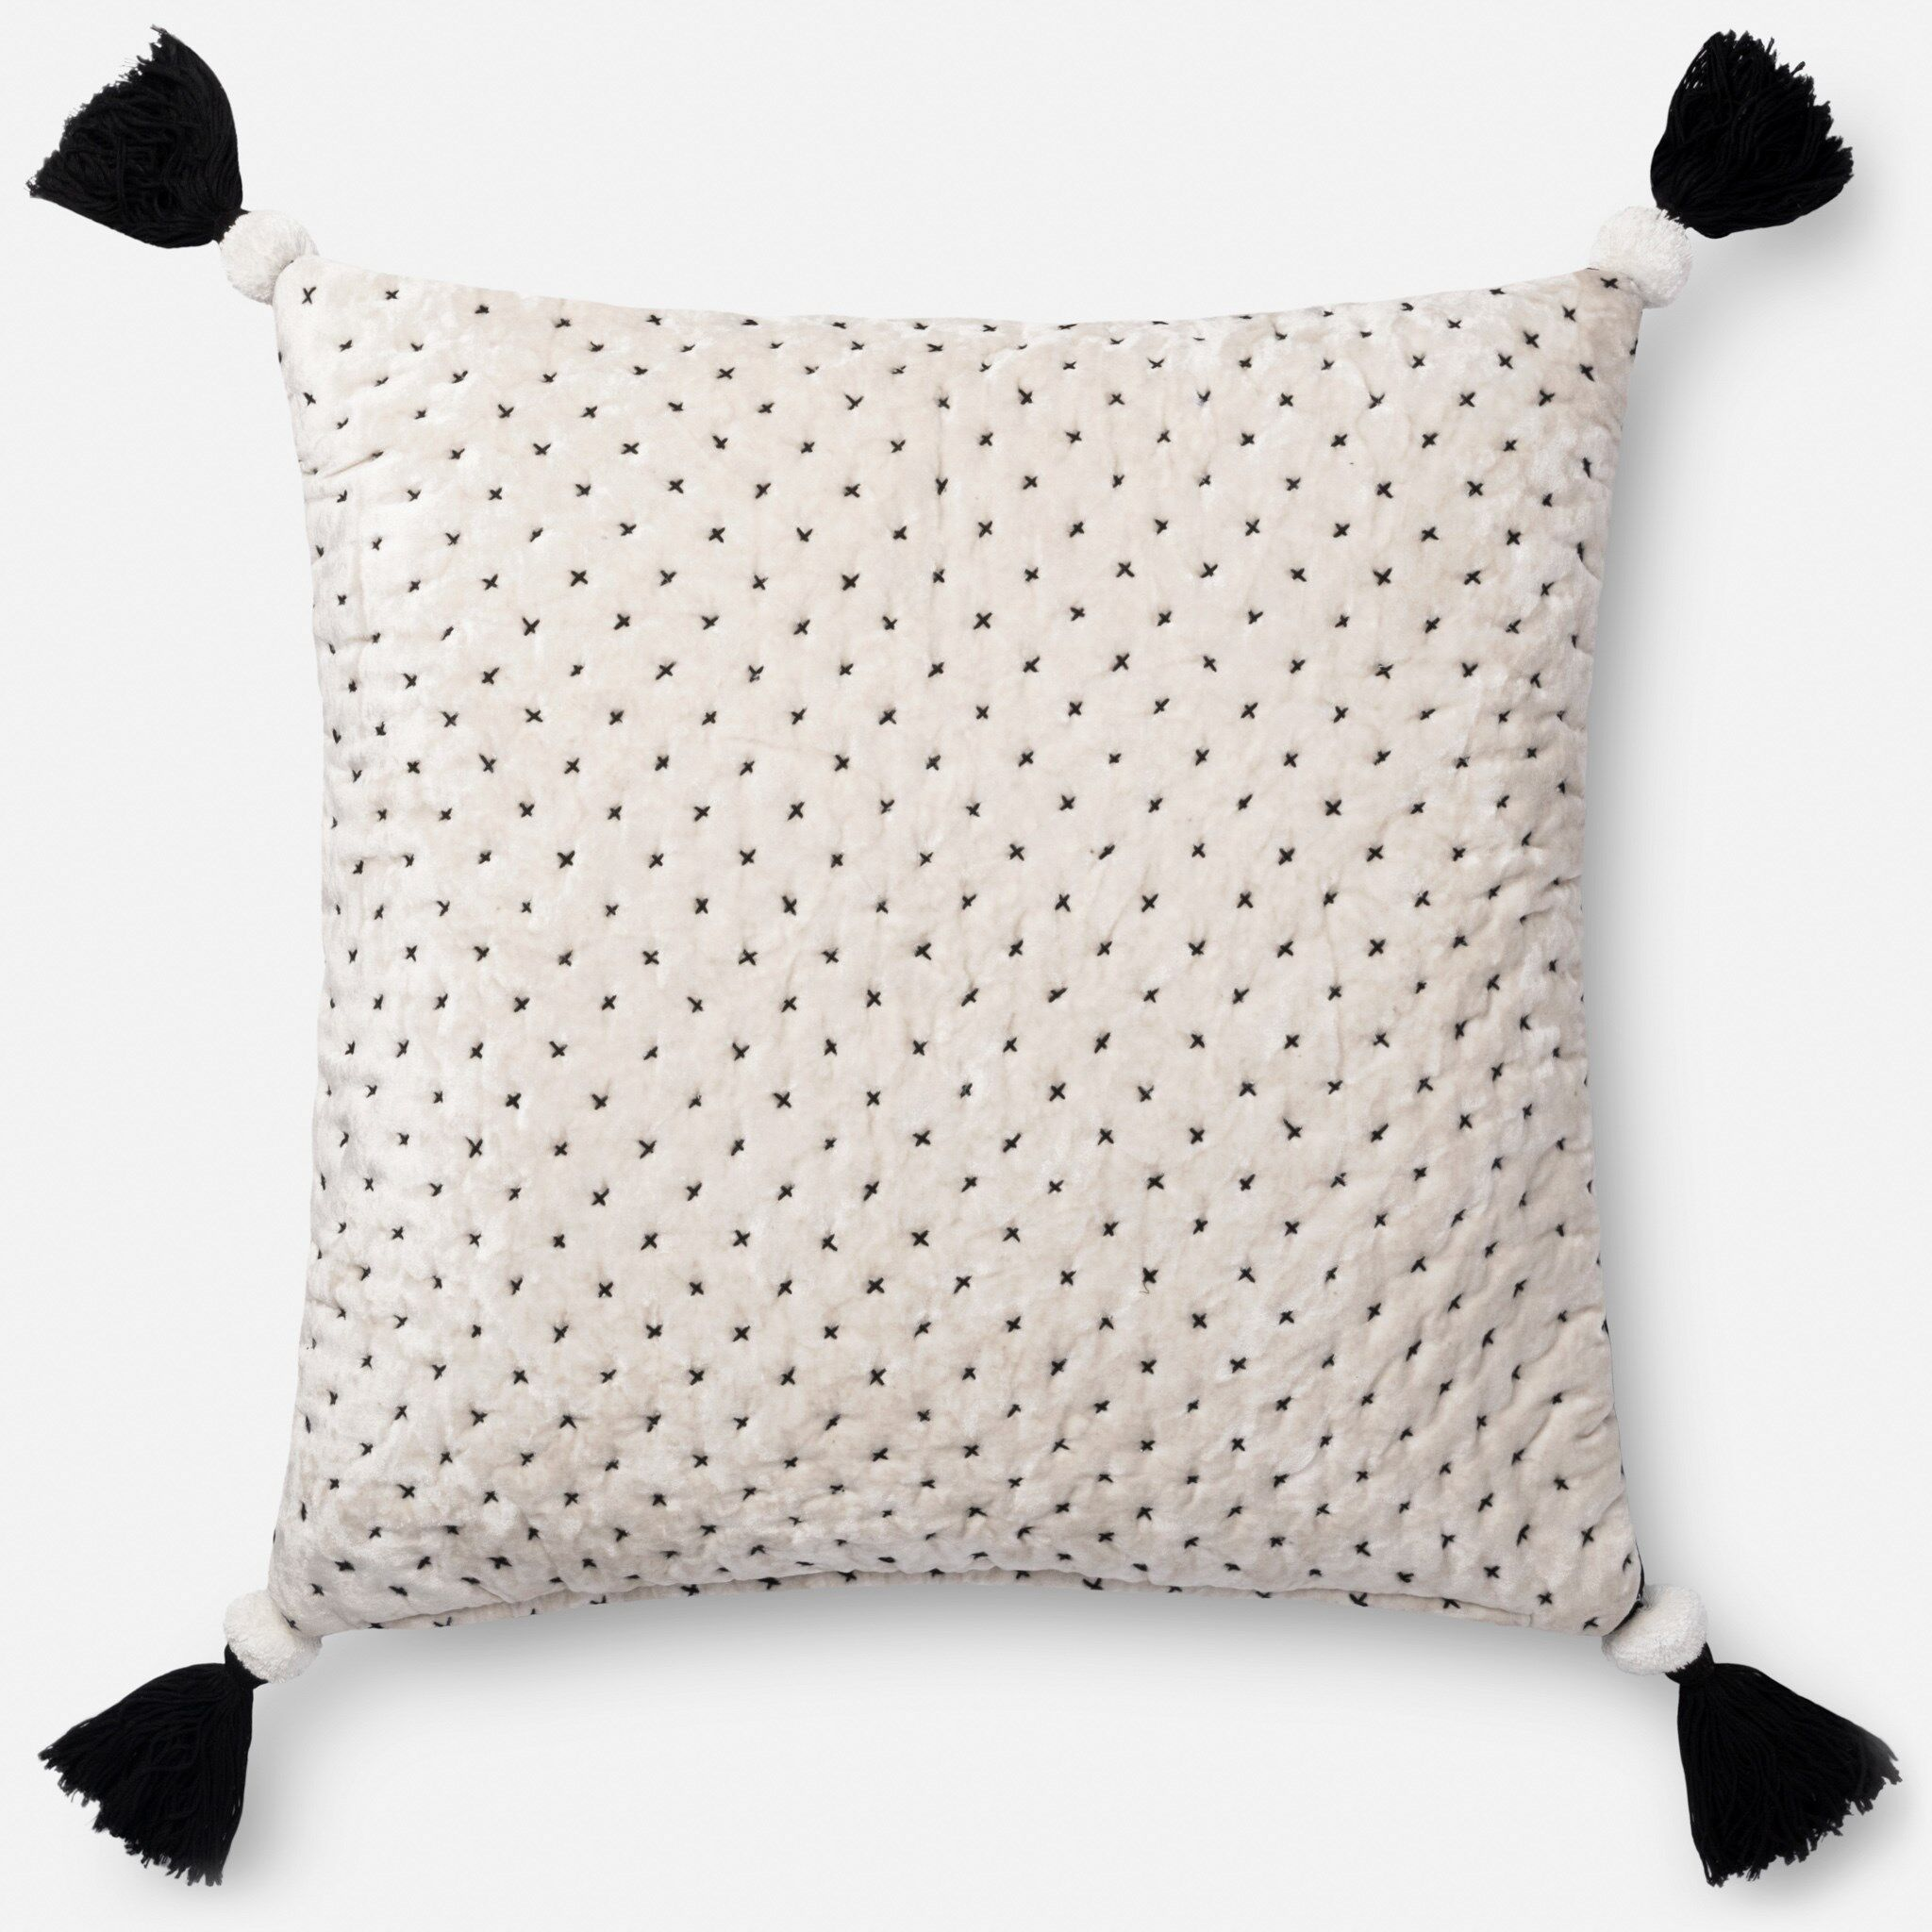 Throw Pillow Color: White/Black, Fill Material: Polyester/Polyfill